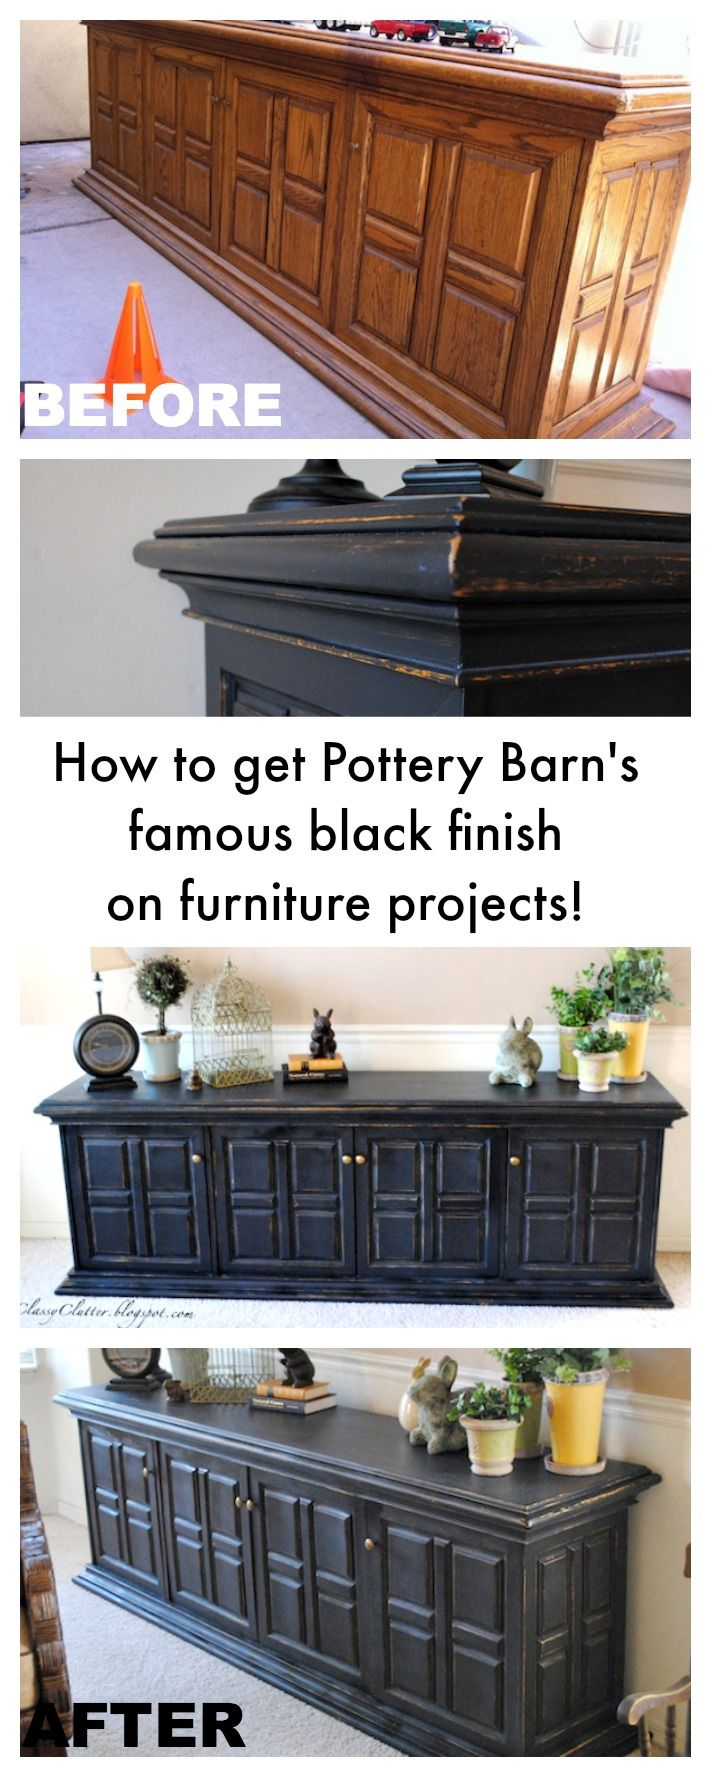 living room pottery barn%0A Pottery Barn Black Furniture Finish Tutorial  www classyclutter net